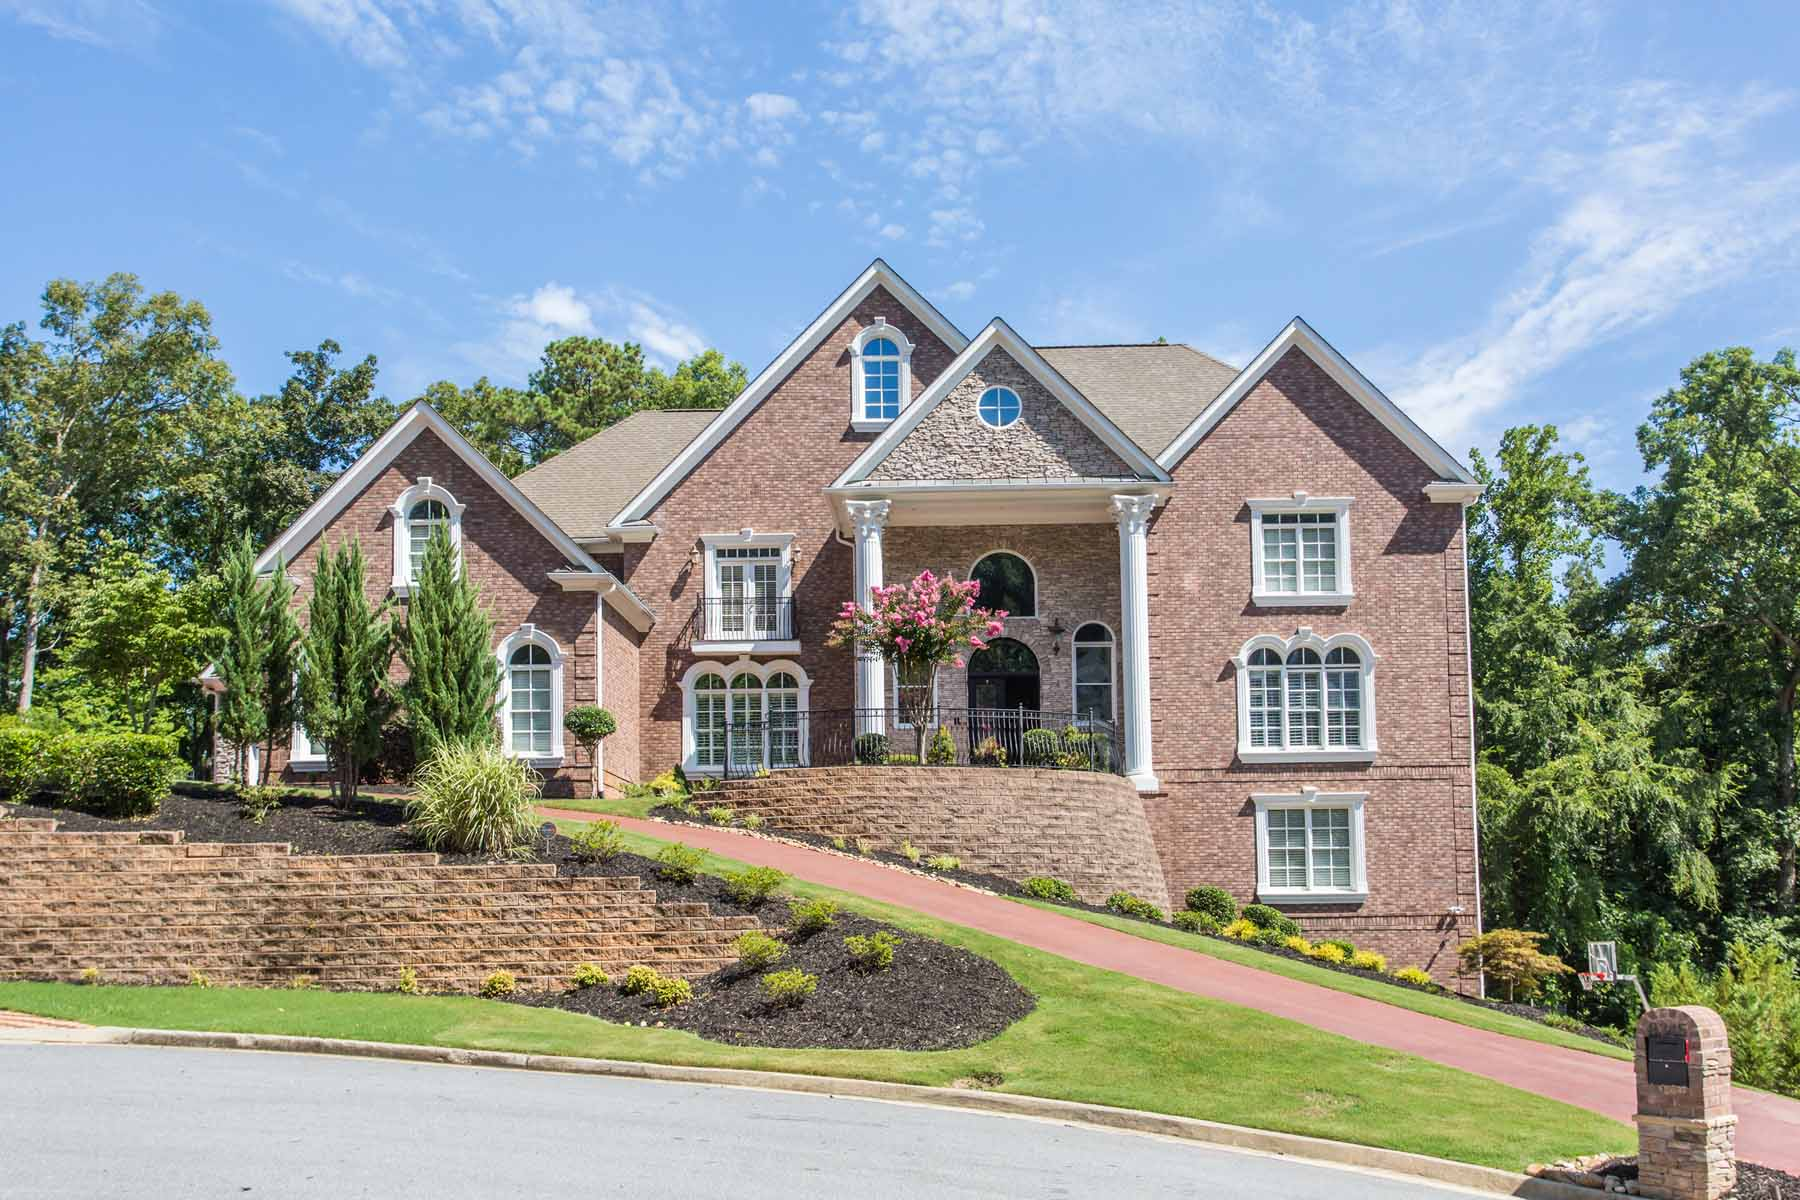 Casa Unifamiliar por un Venta en Grand Estate in Sandy Springs 8345 Grogans Ferry Sandy Springs, Georgia, 30350 Estados Unidos